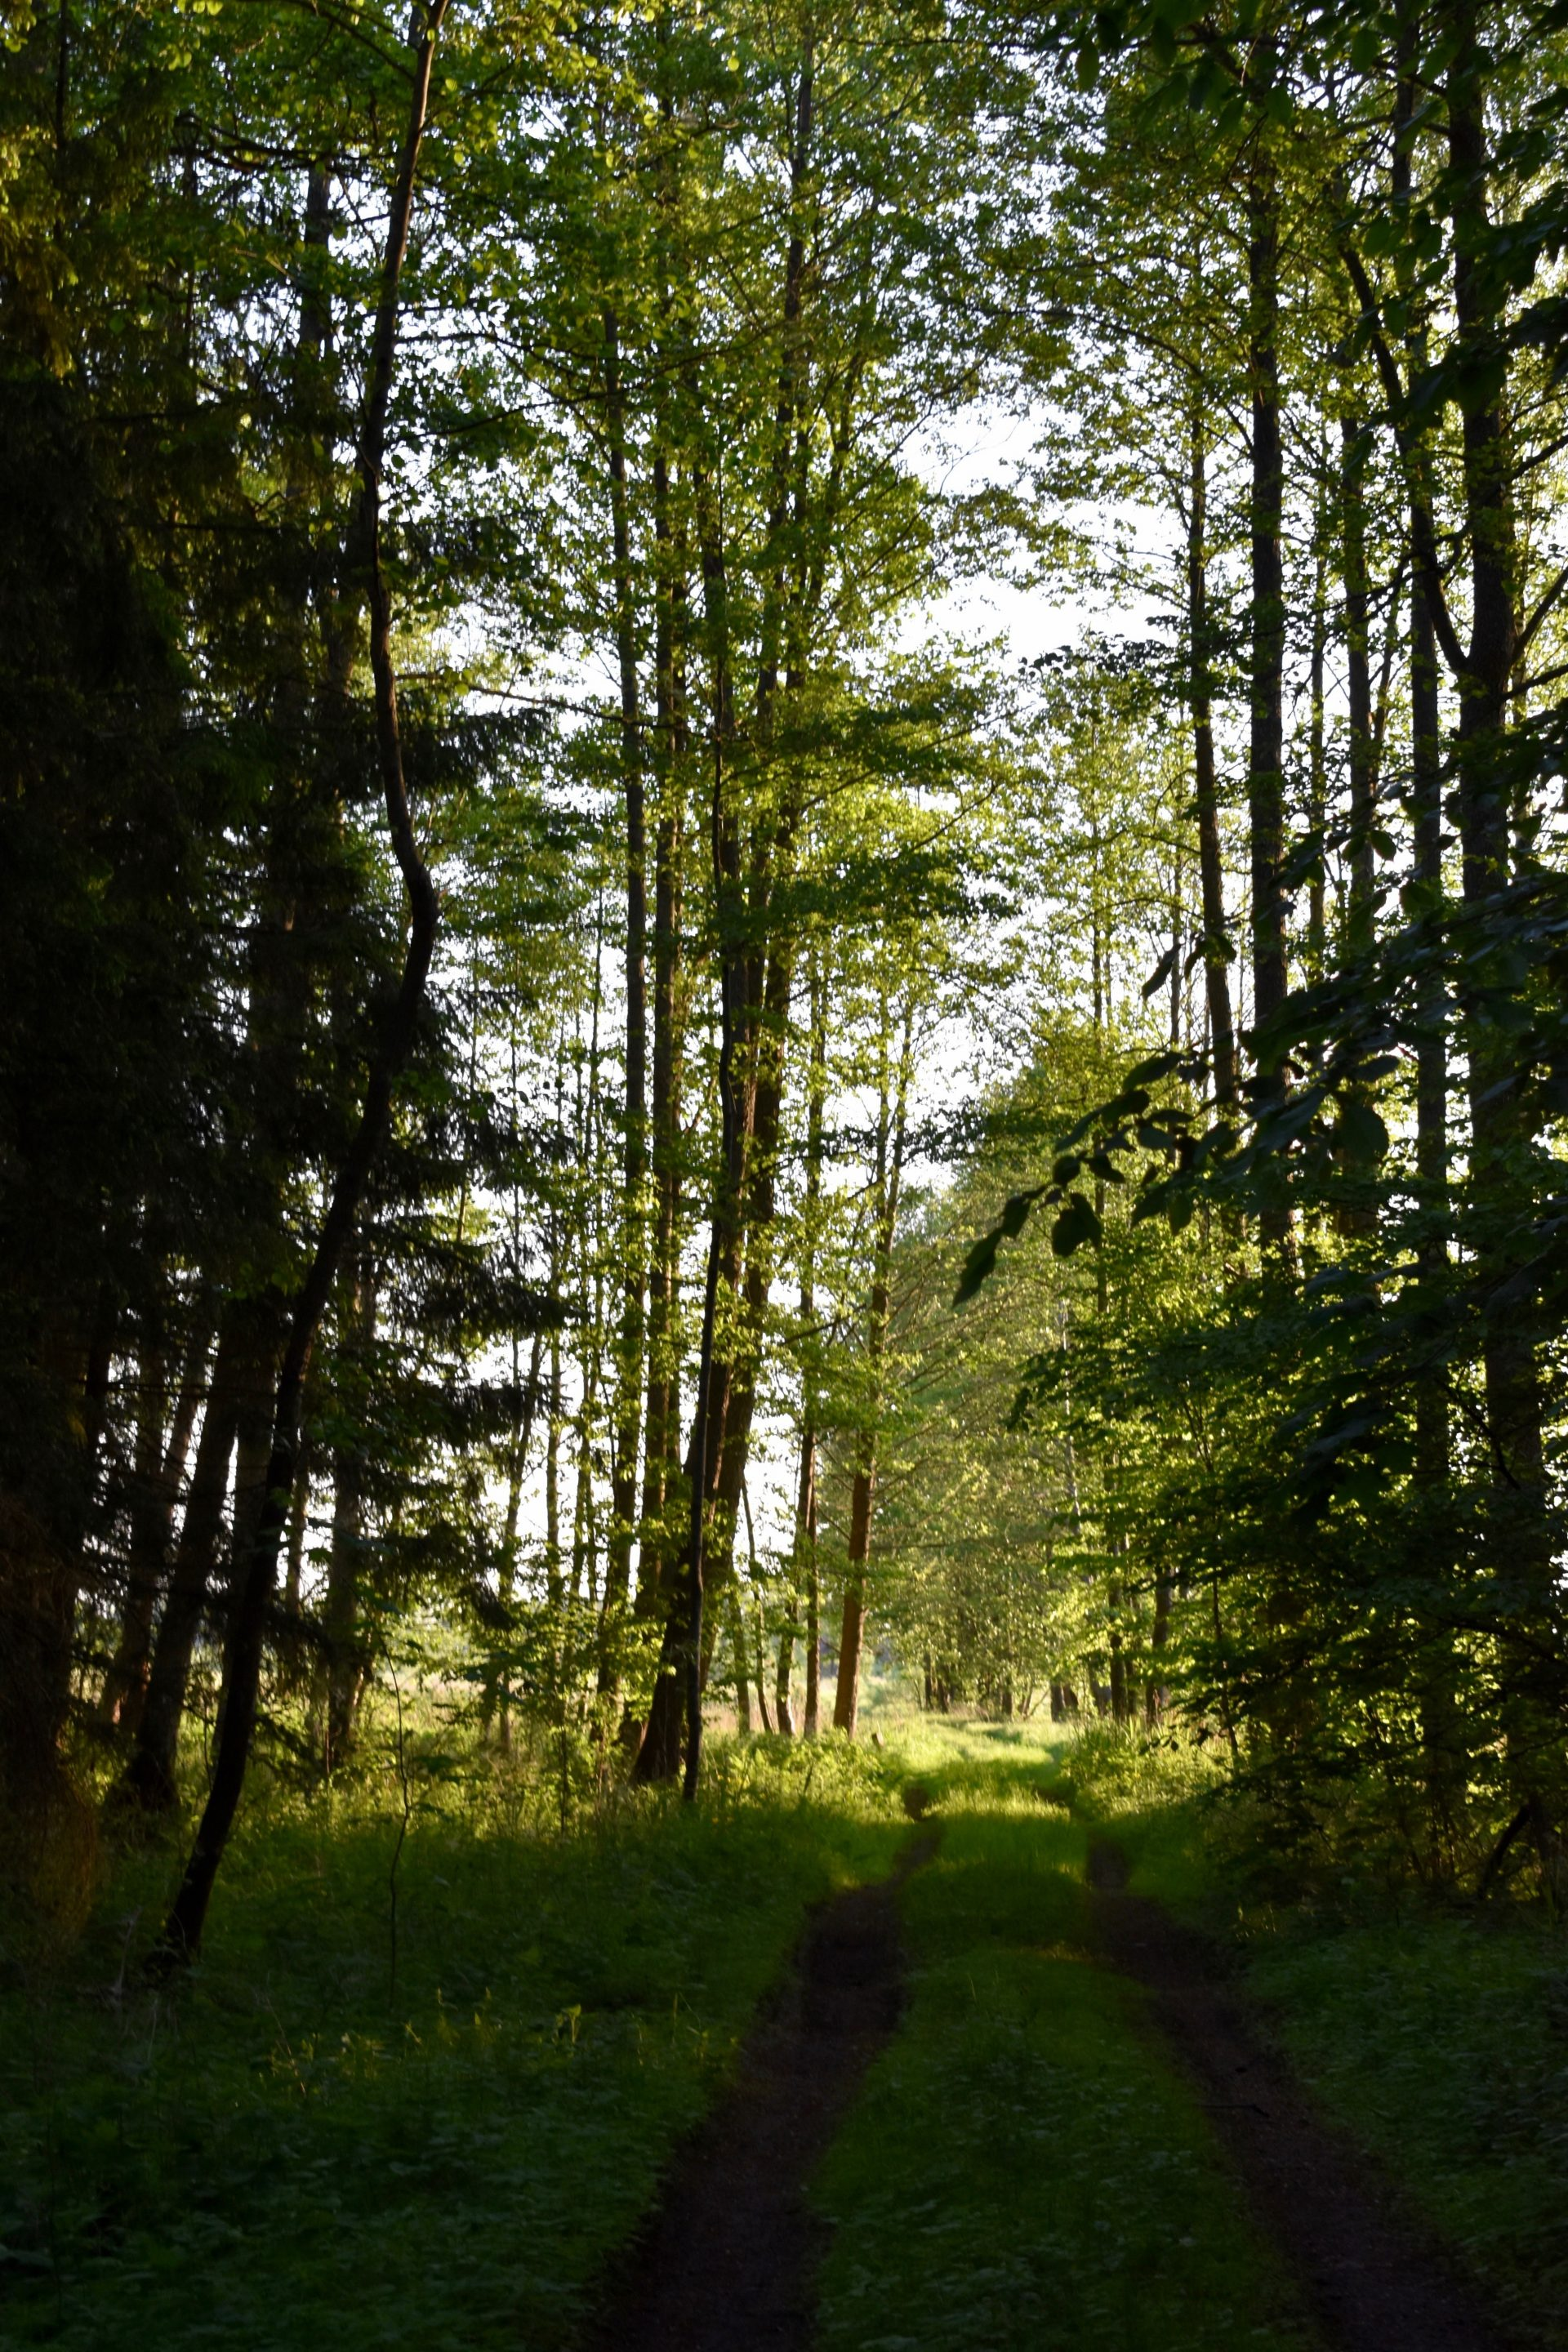 Sunlight in the green forest